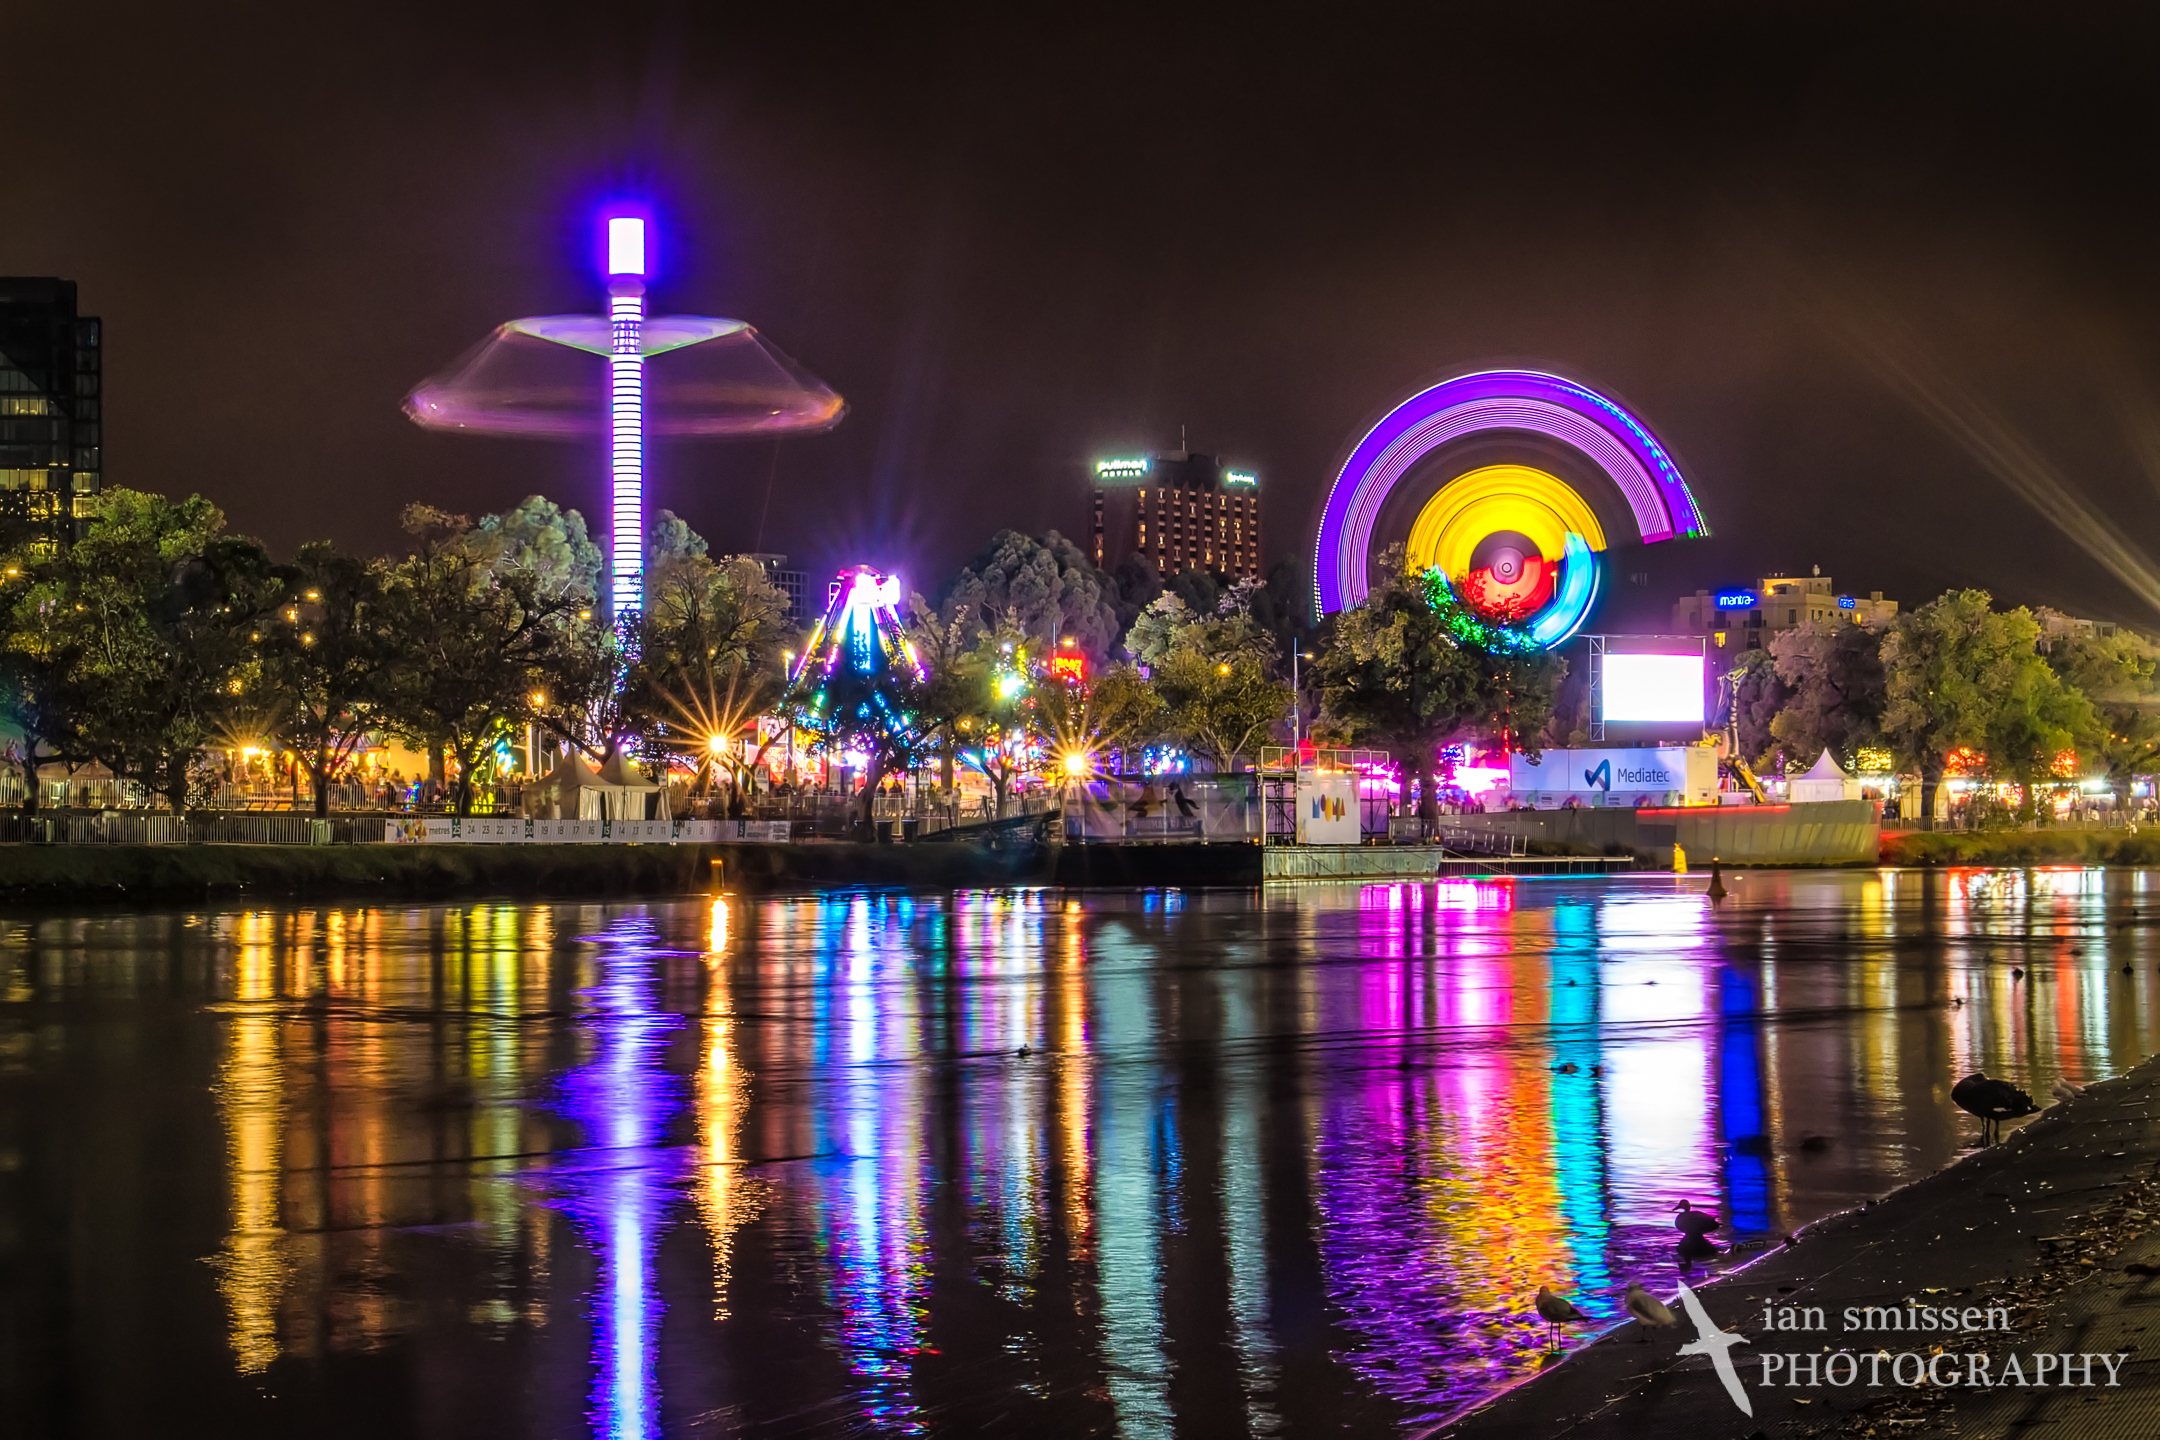 Yarra River at night during Moomba Festival